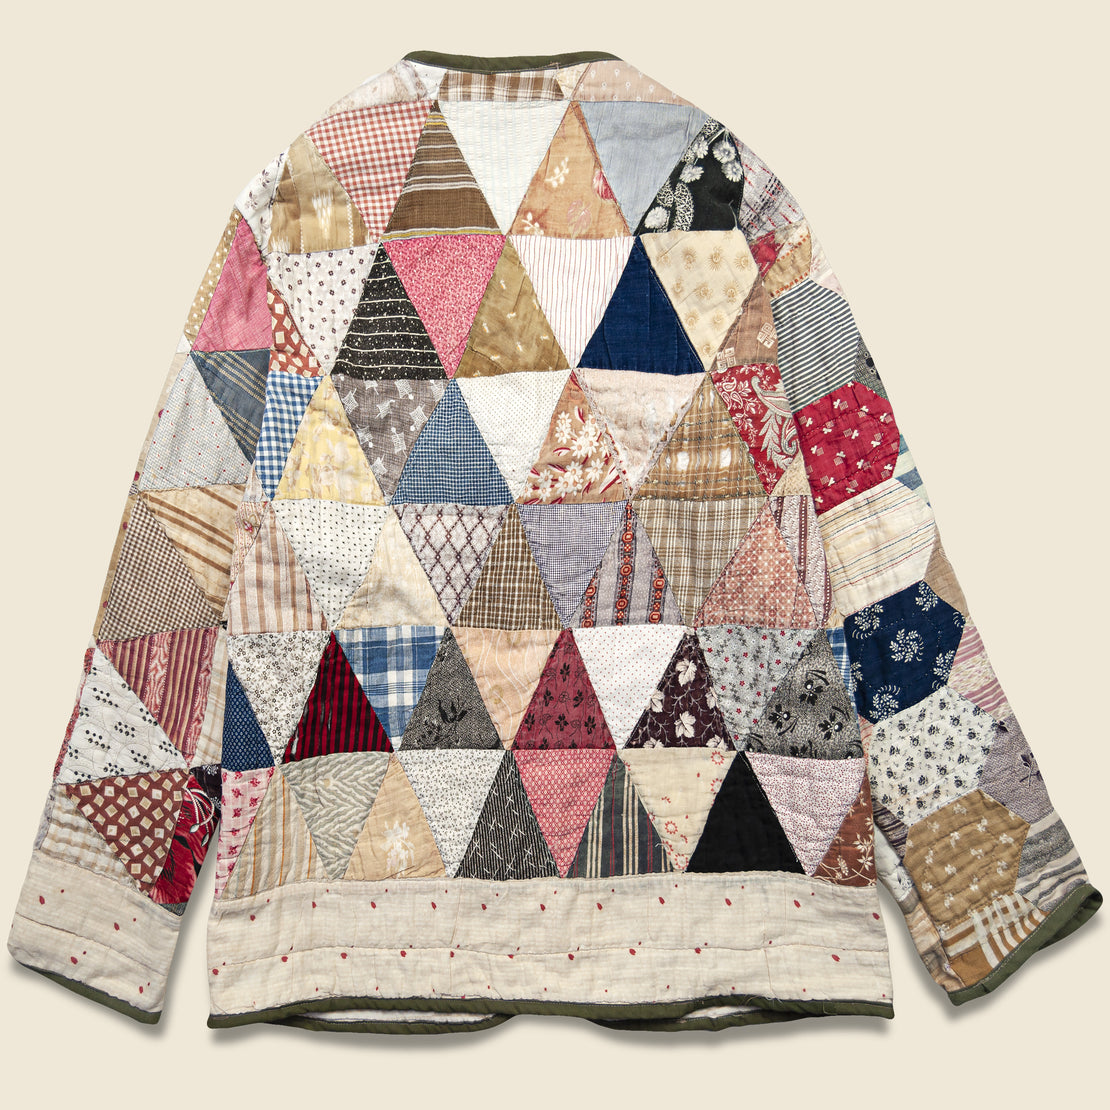 Triangles & Striped Lining Quilt Kimono - Multi